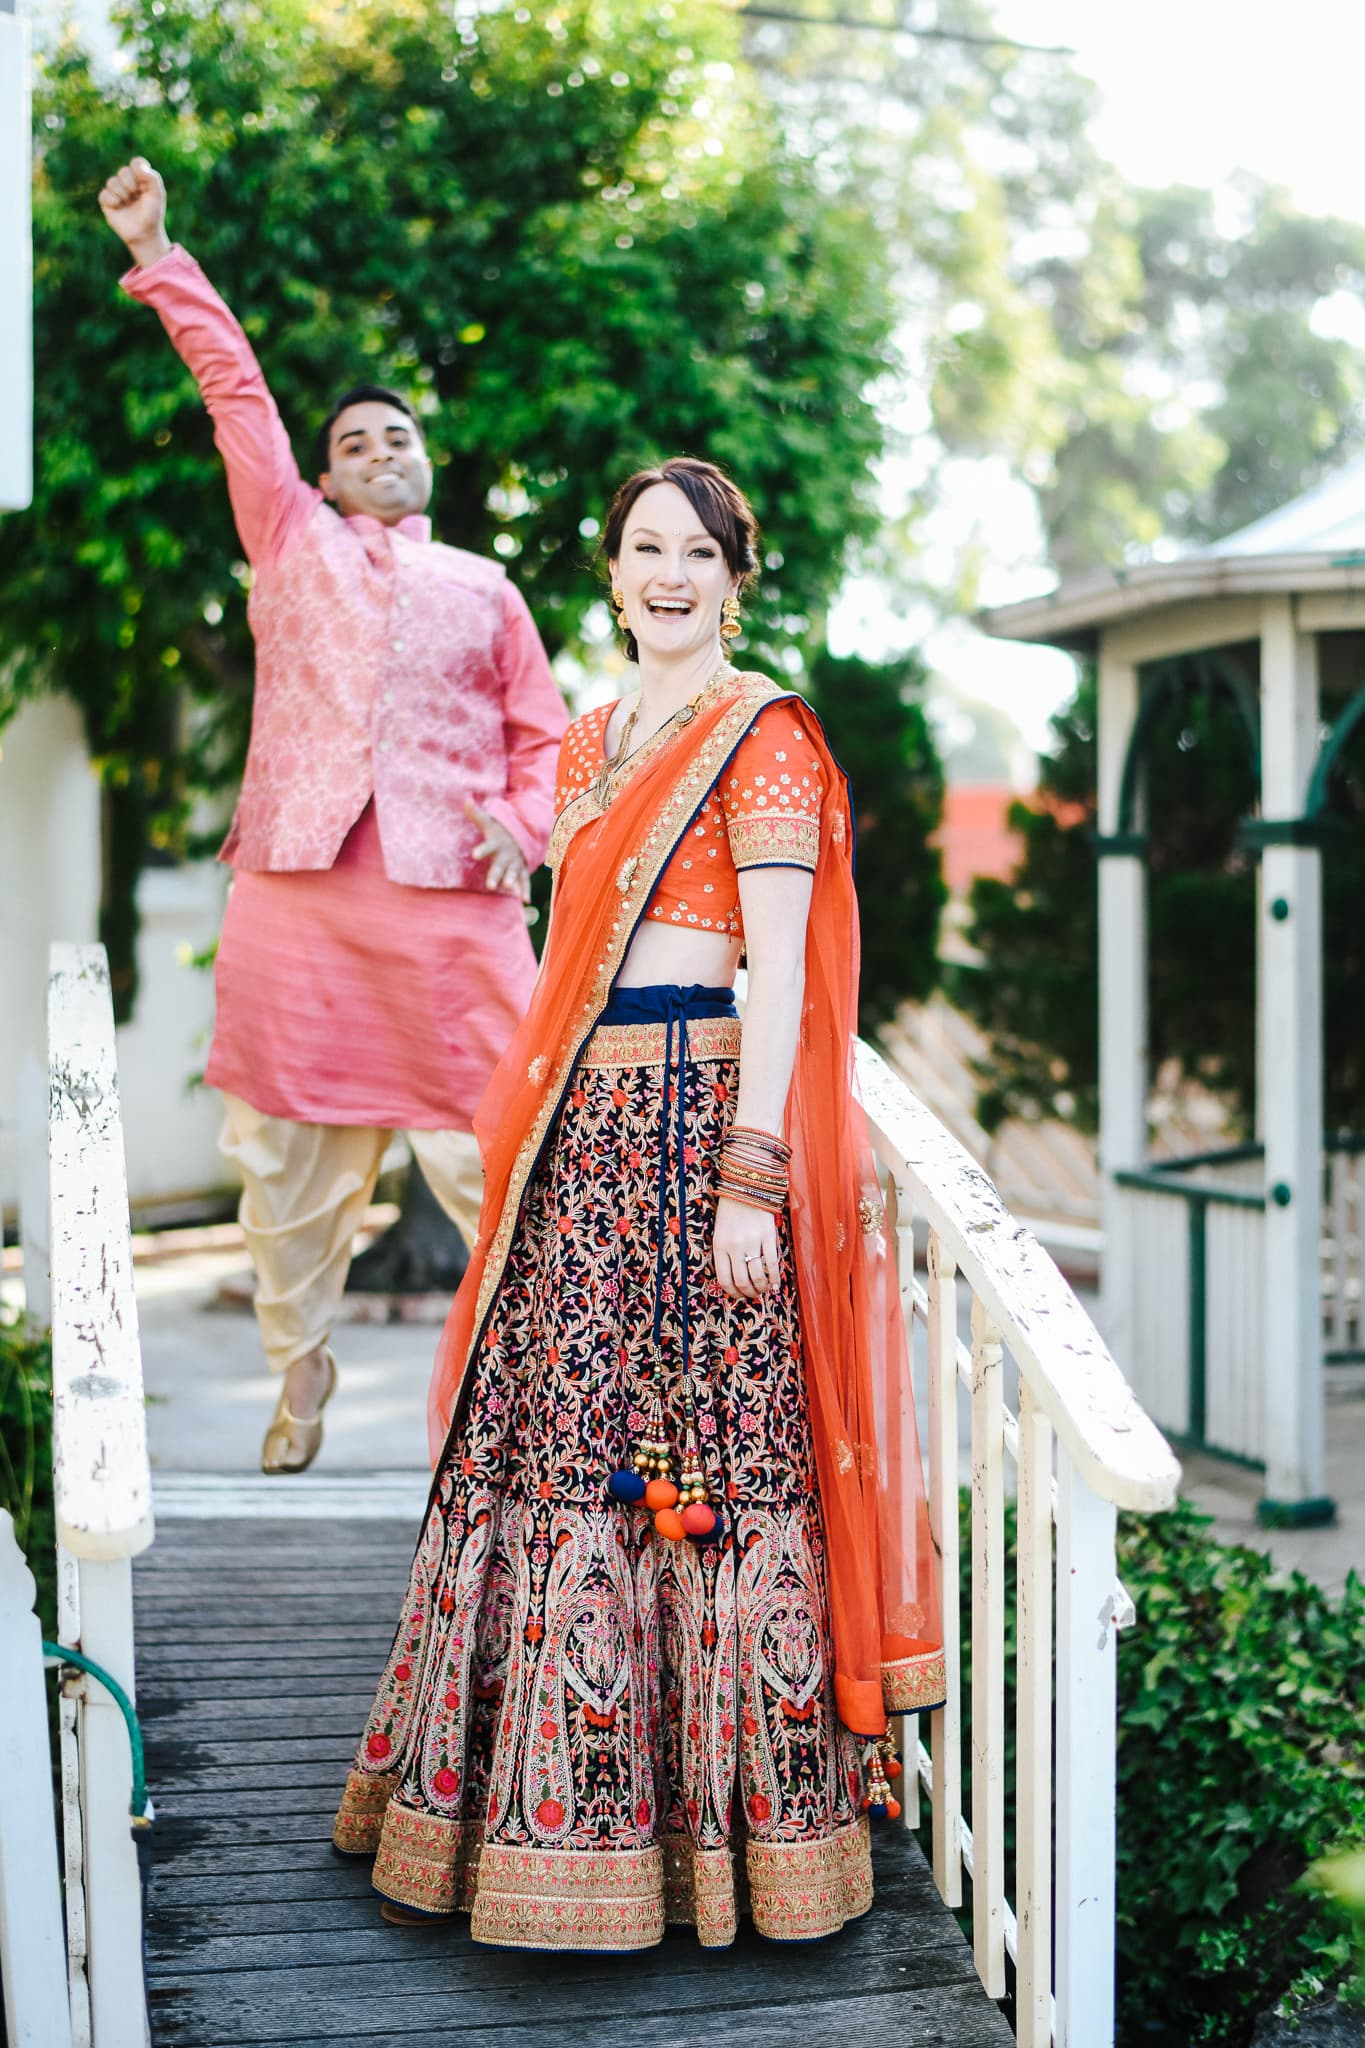 A Colourful Multicultural wedding in Melbourne